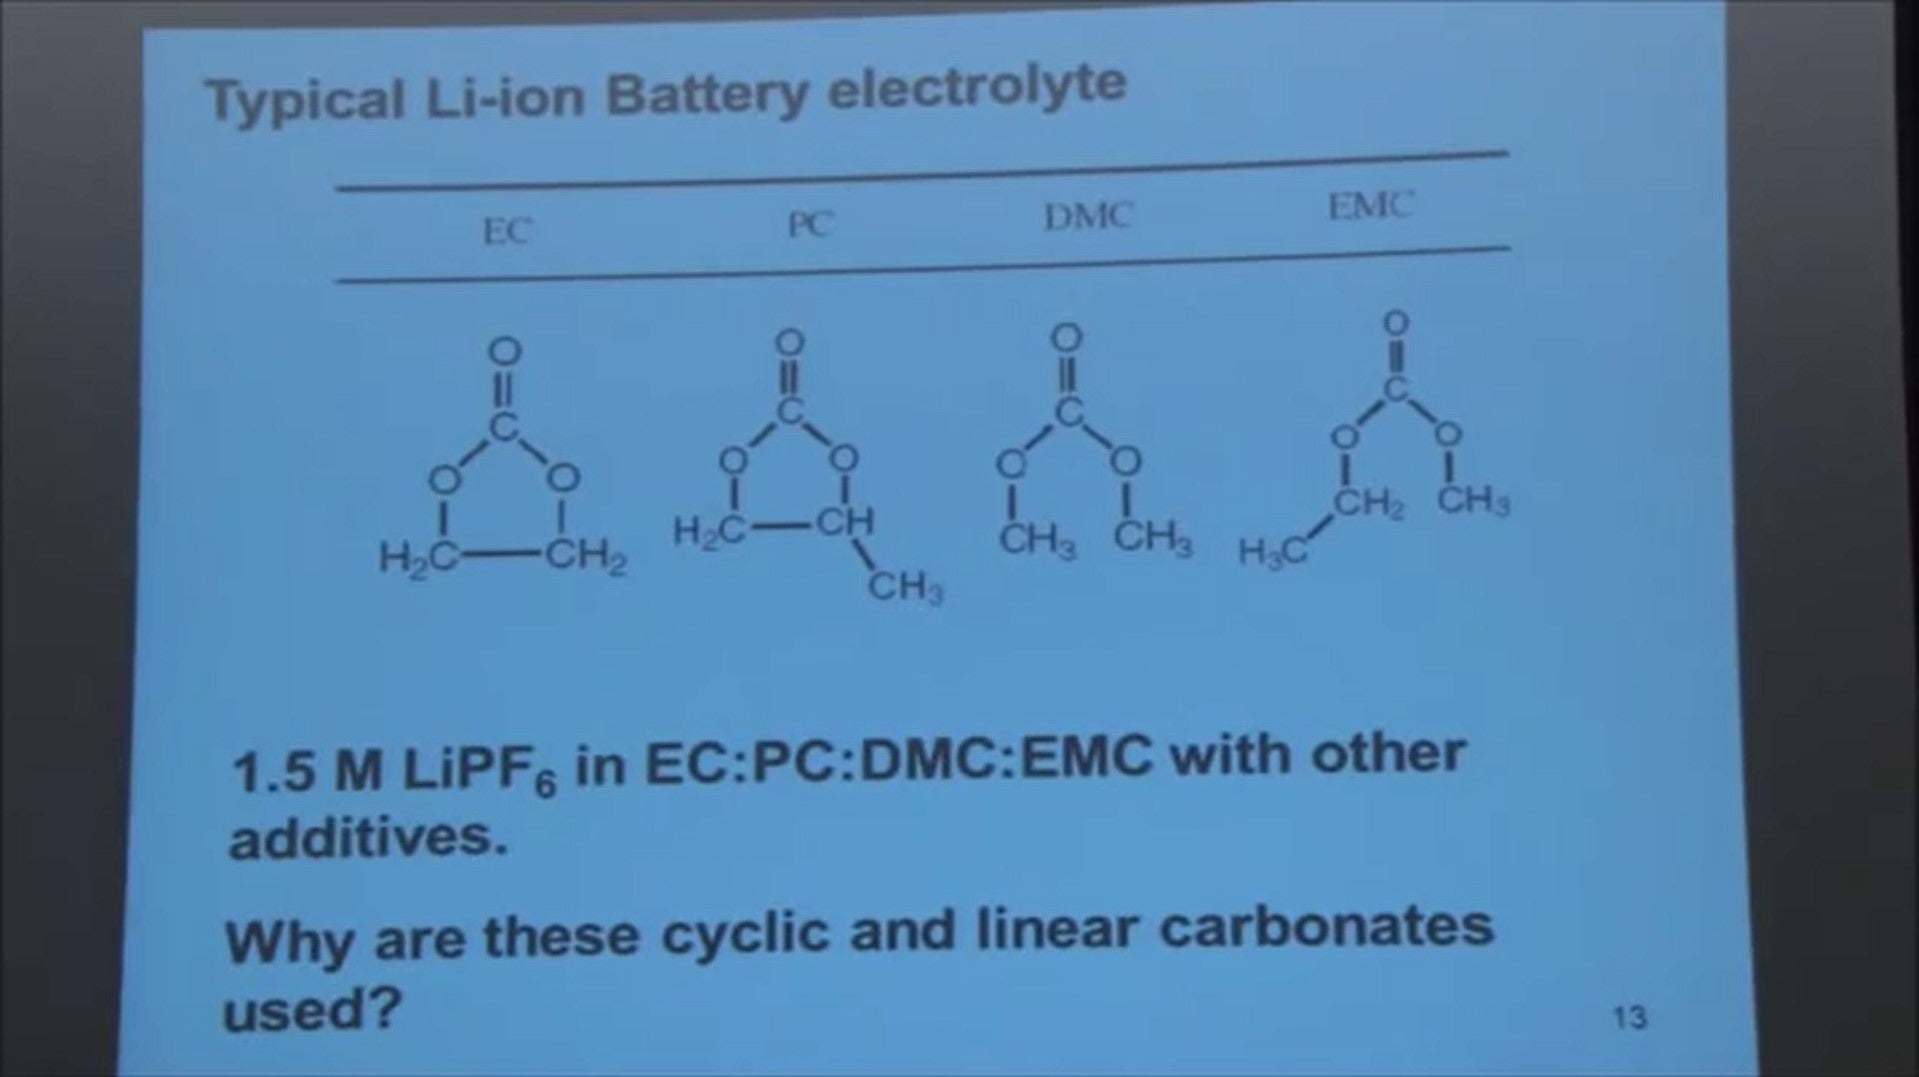 typical lithium-ion cell electrolyte